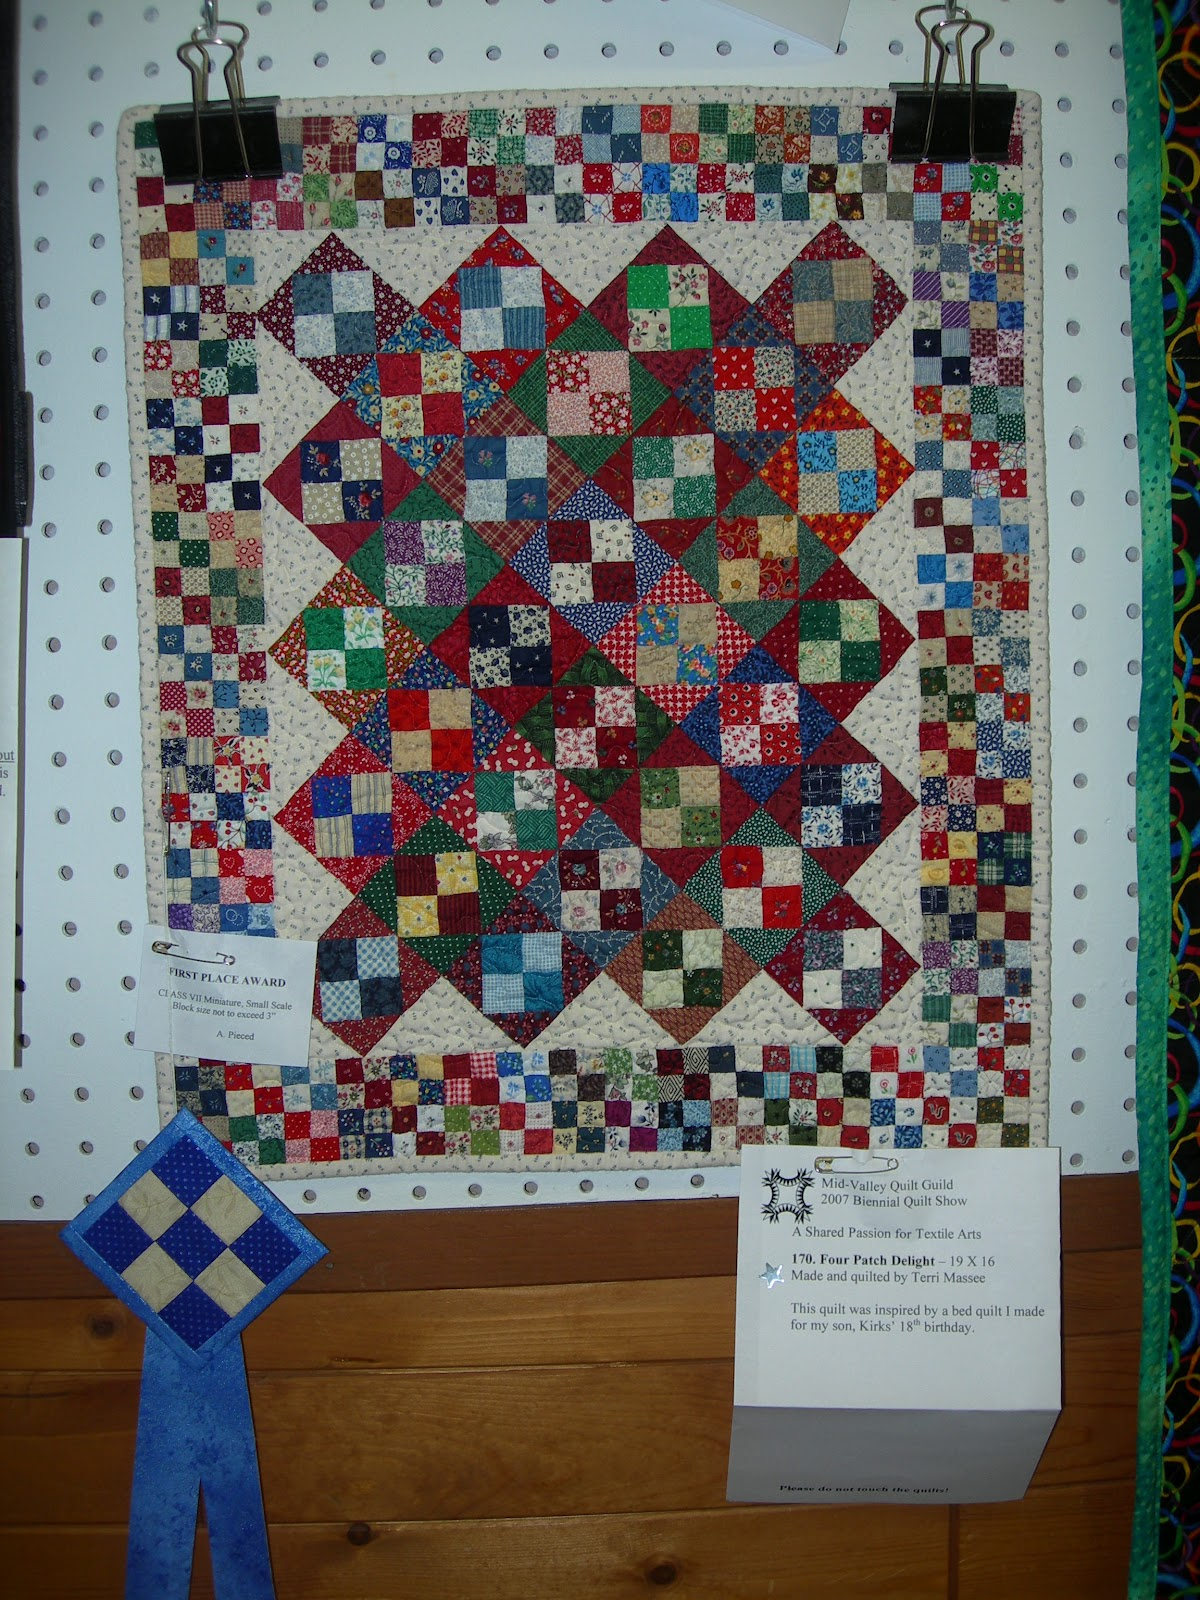 Michele Bilyeu Creates *With Heart and Hands*: Miniature Quilts! Plus: Free Miniature Quilt Patterns